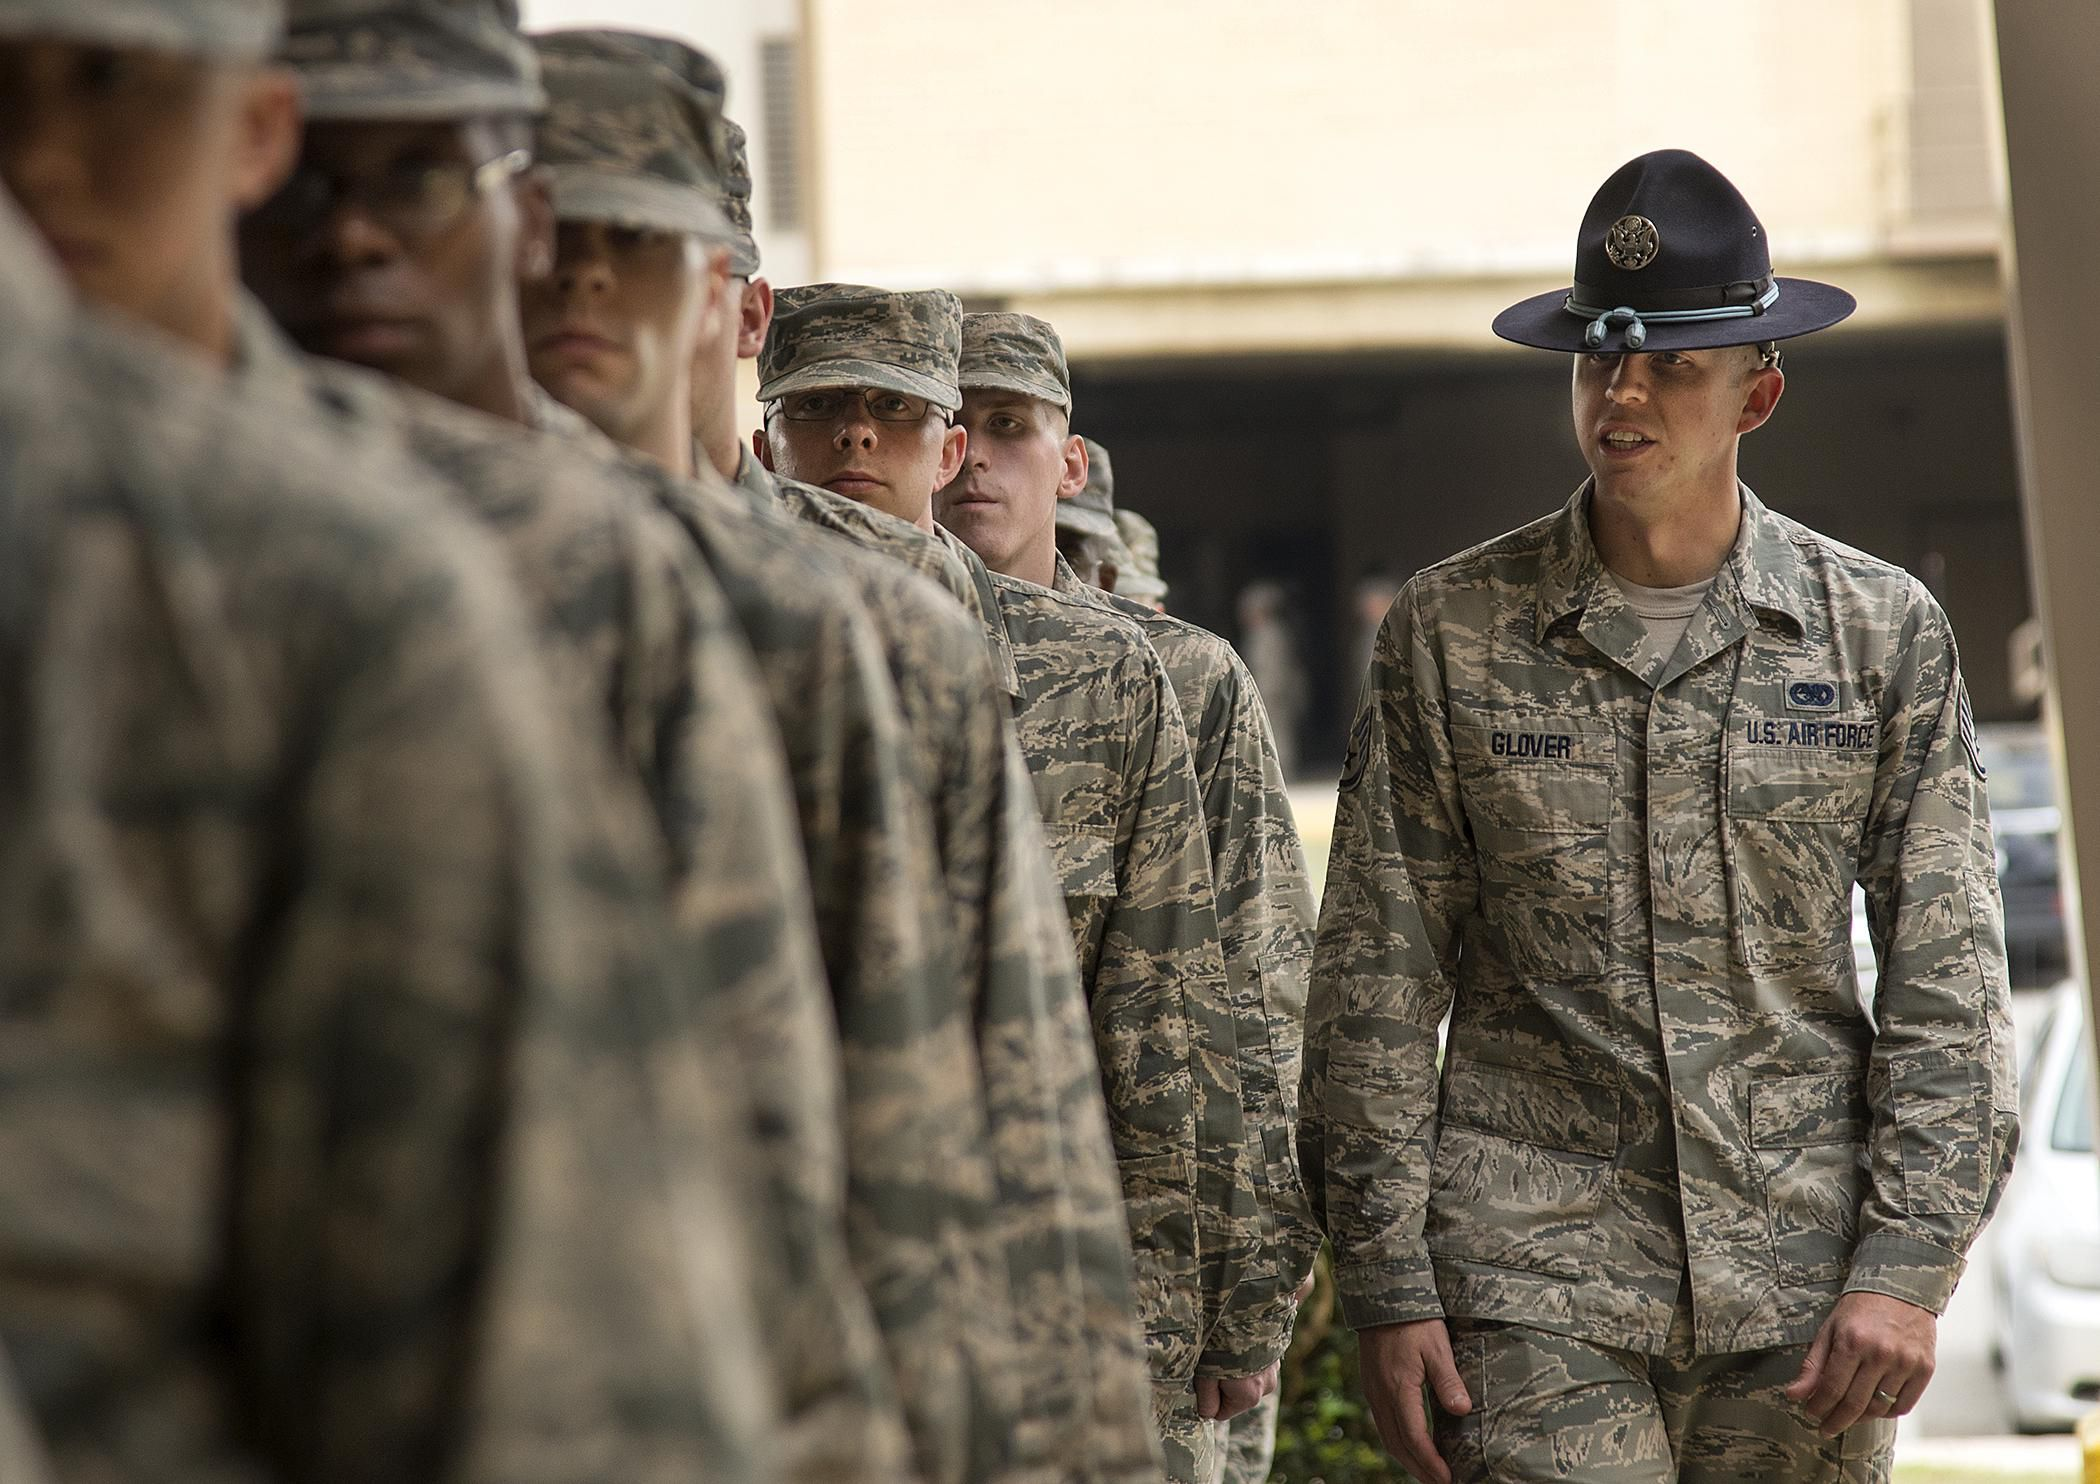 Physical Fitness Standards for Air Force Basic Training